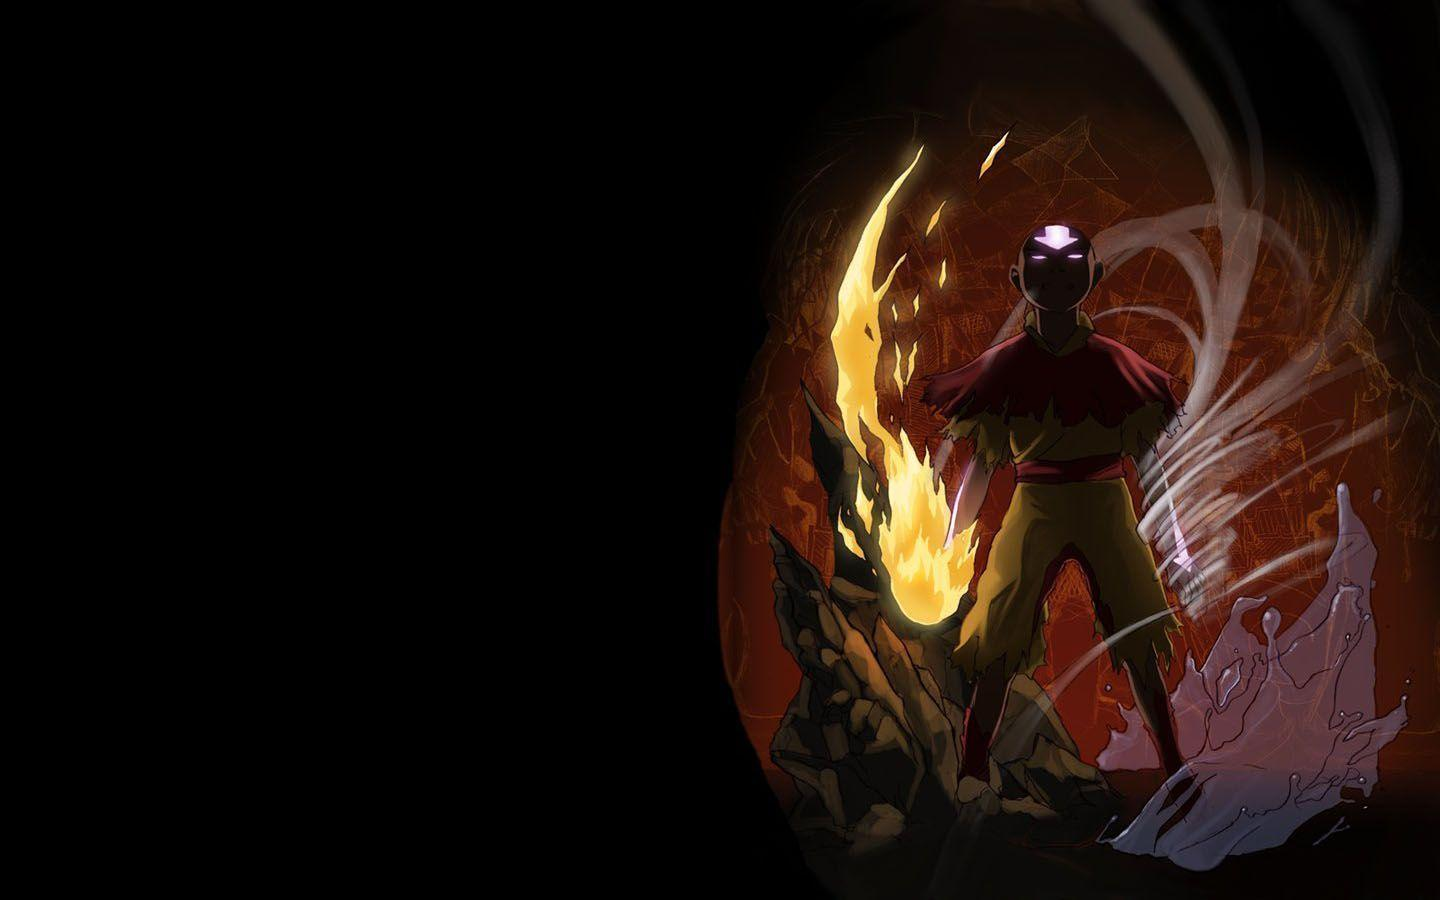 Avatar The Last Airbender Wallpapers - Wallpaper Cave